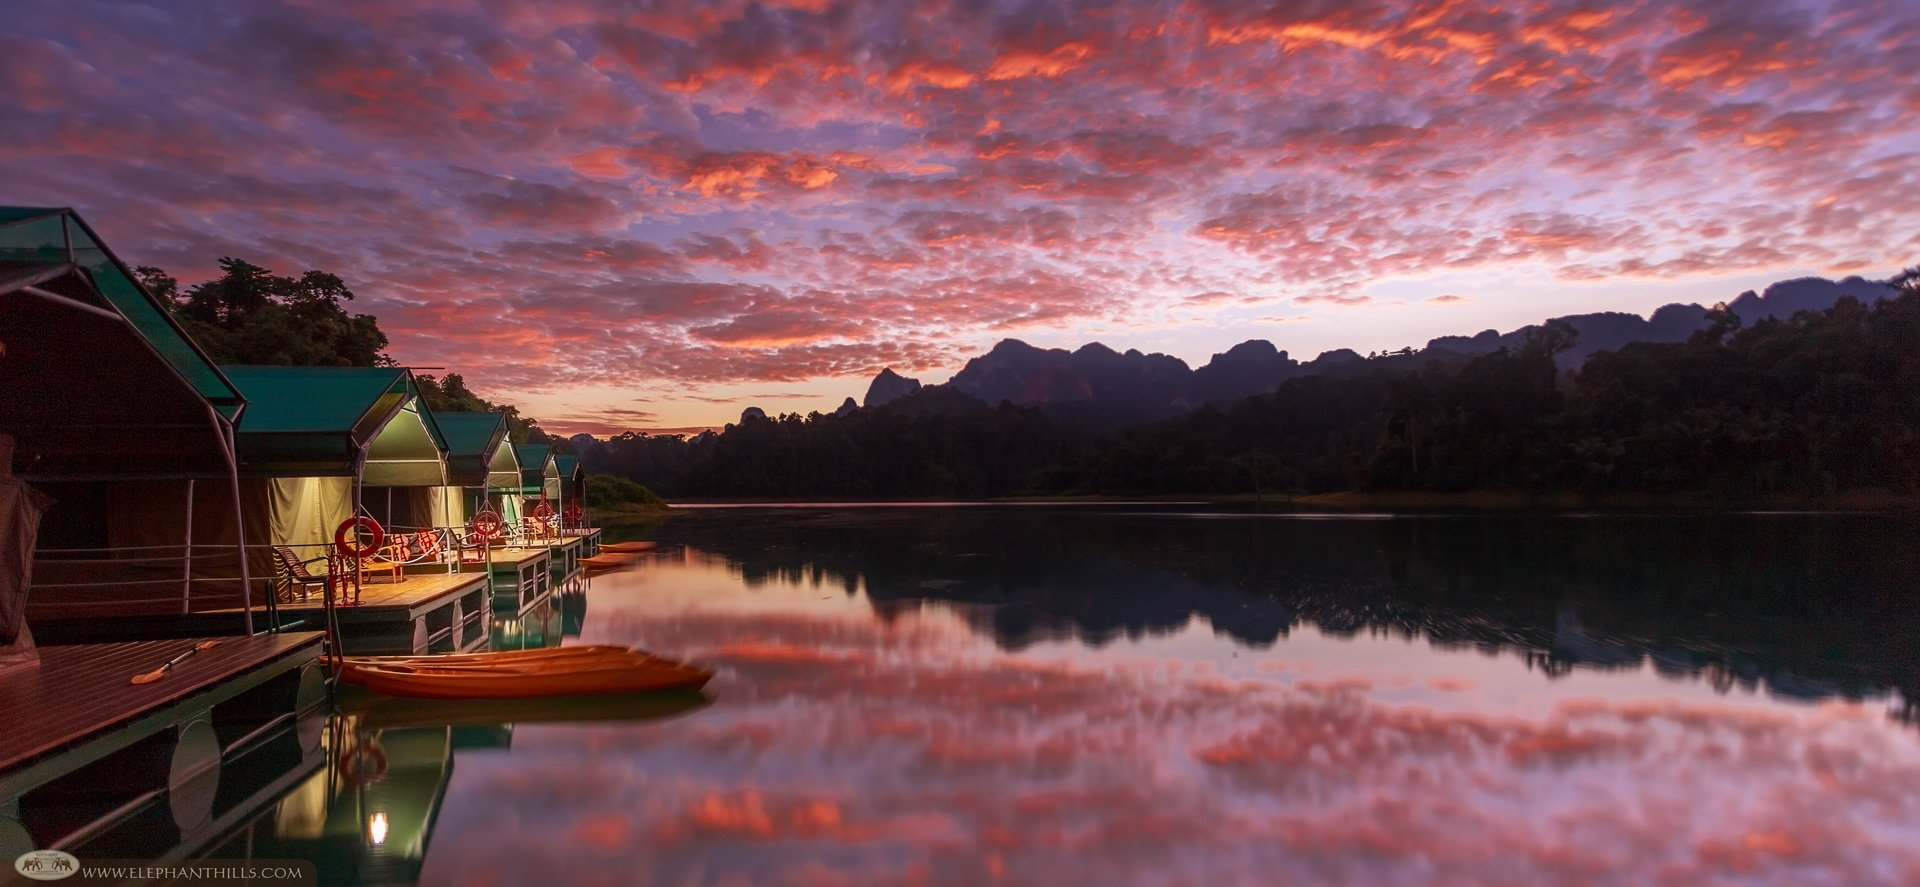 For idyllic views, Rainforest Camp is the best hotel in Khao Sok as voted by TripAdvisor